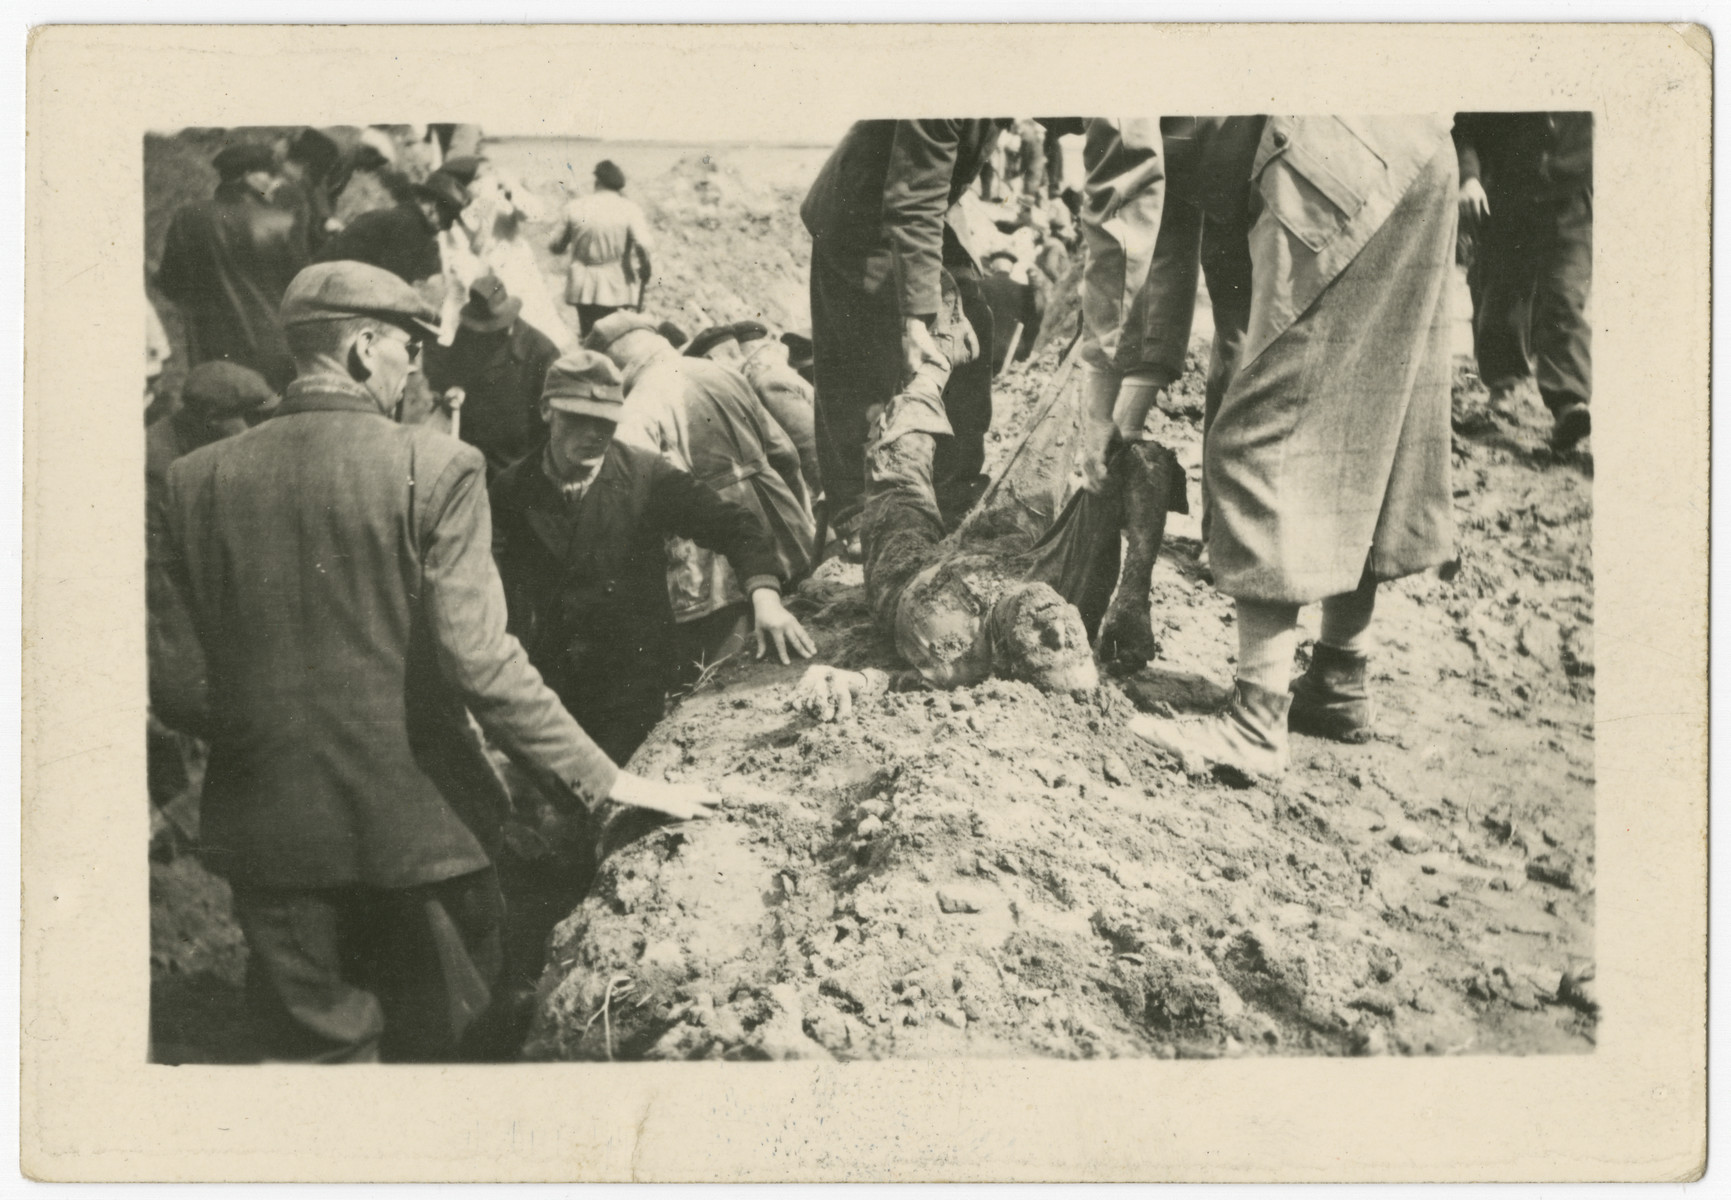 German civilians dig graves for the victims of the Gardelegen atrocity.